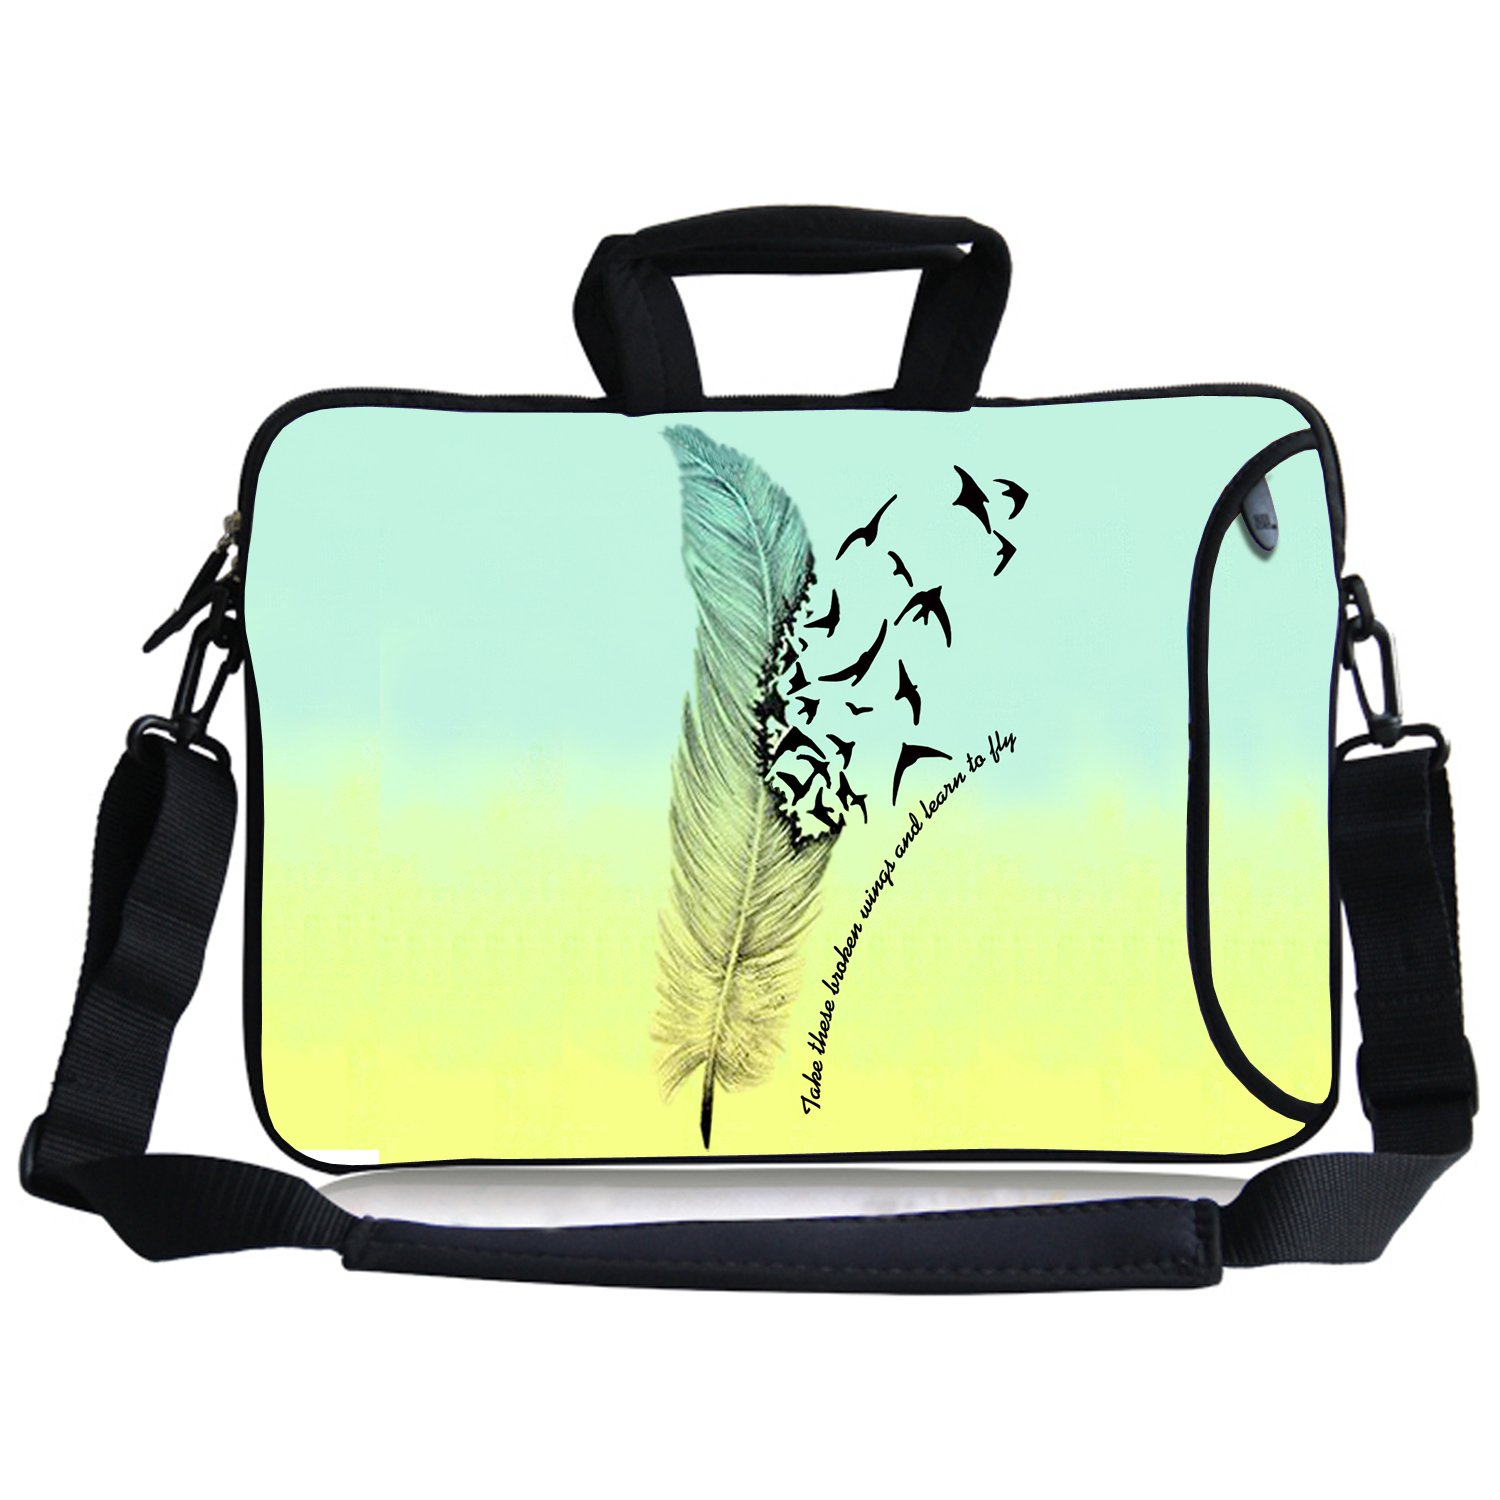 Laptop Shoulder Bag Neoprene Sleeve Case Cover with Side Pocket, Carrying Handle, Removable Shoulder Strap for for 13'' Macbook Air/Pro|iPad Pro 12.9|Surface Book Pro3/Pro4|Chromebook 13 (Take These Broken Wing and Learn To Fly)